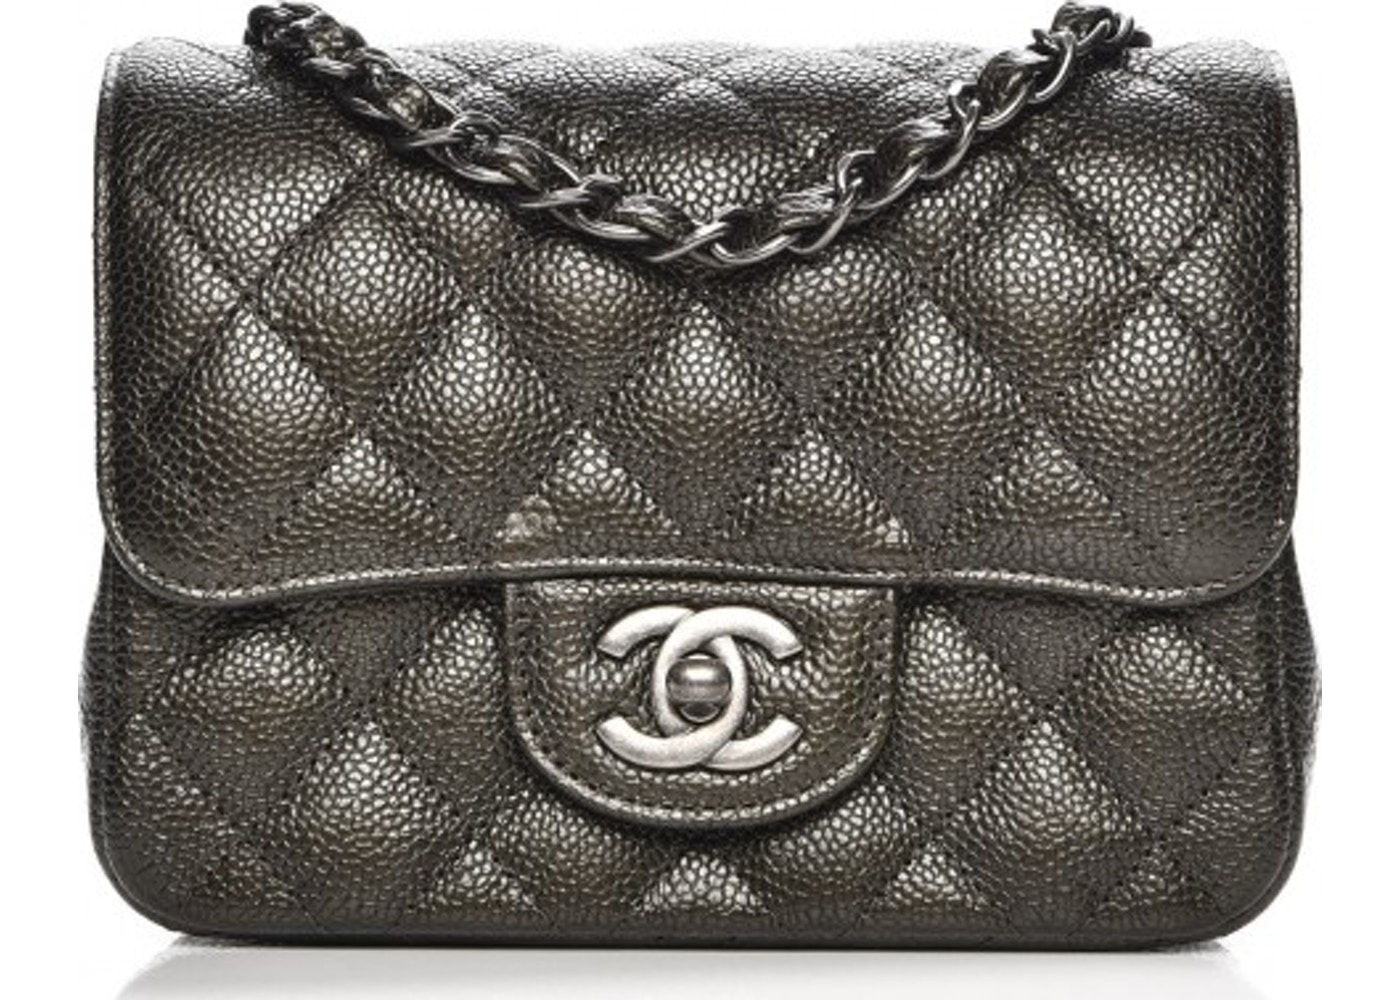 3b871ccb640d41 Chanel Square Flap Quilted Diamond Metallic Mini Dark Charcoal. Quilted  Diamond Metallic Mini Dark Charcoal